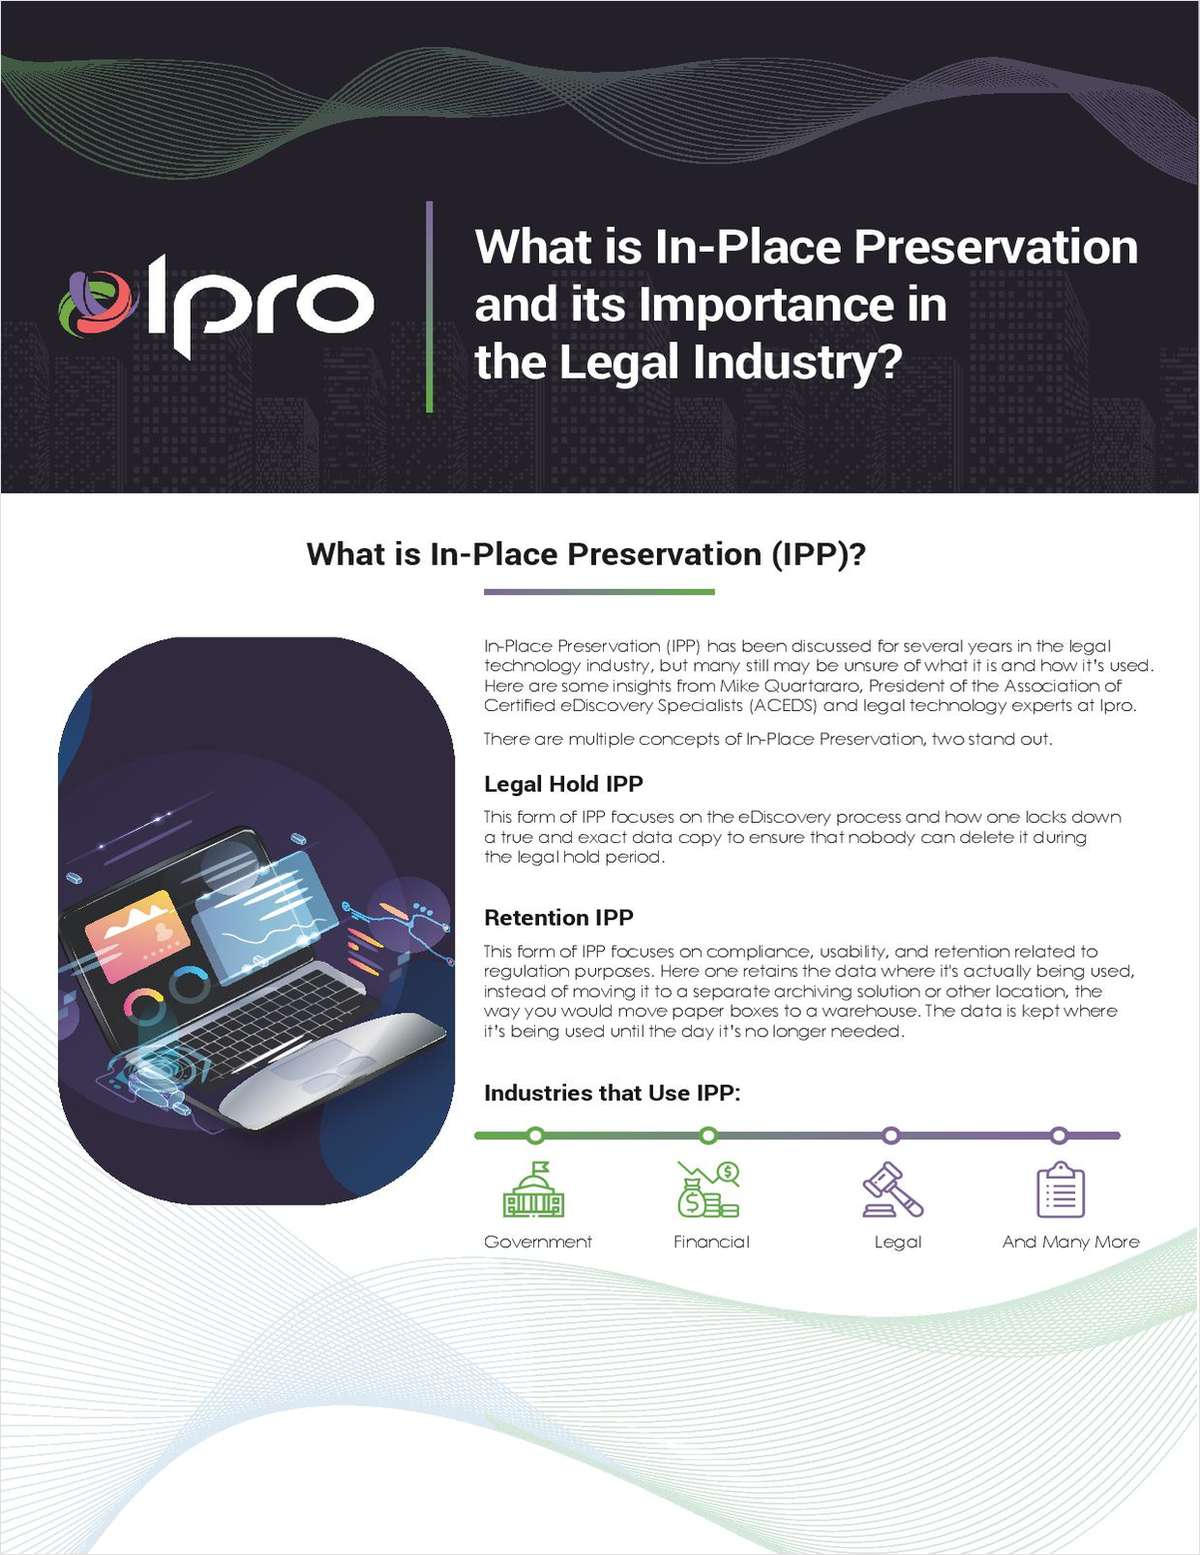 What is In-Place Preservation and its Importance in the Legal Industry?